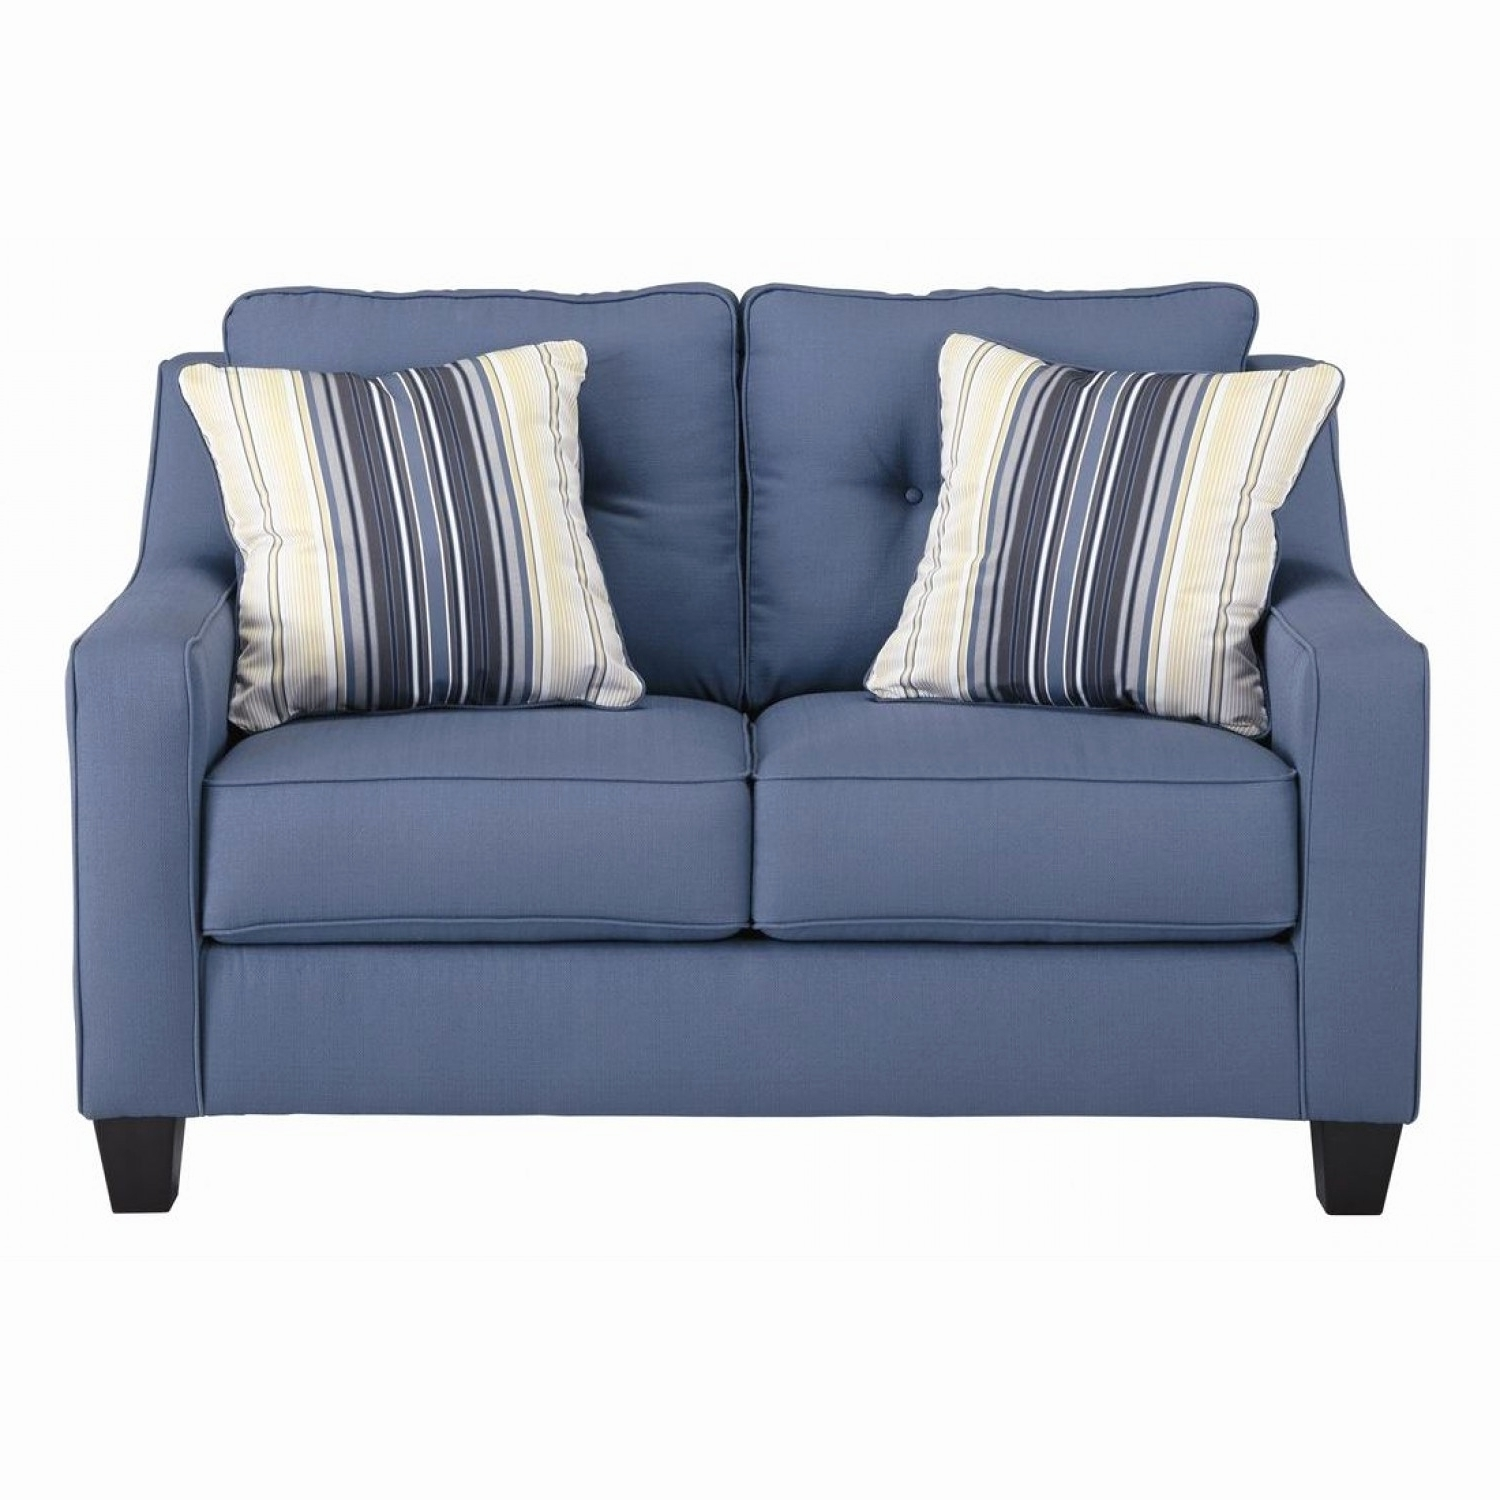 Popular Sofas : Left Cuddler Sectional Leather Cuddler Sofa Snuggle Chair For Snuggle Sofas (View 20 of 20)